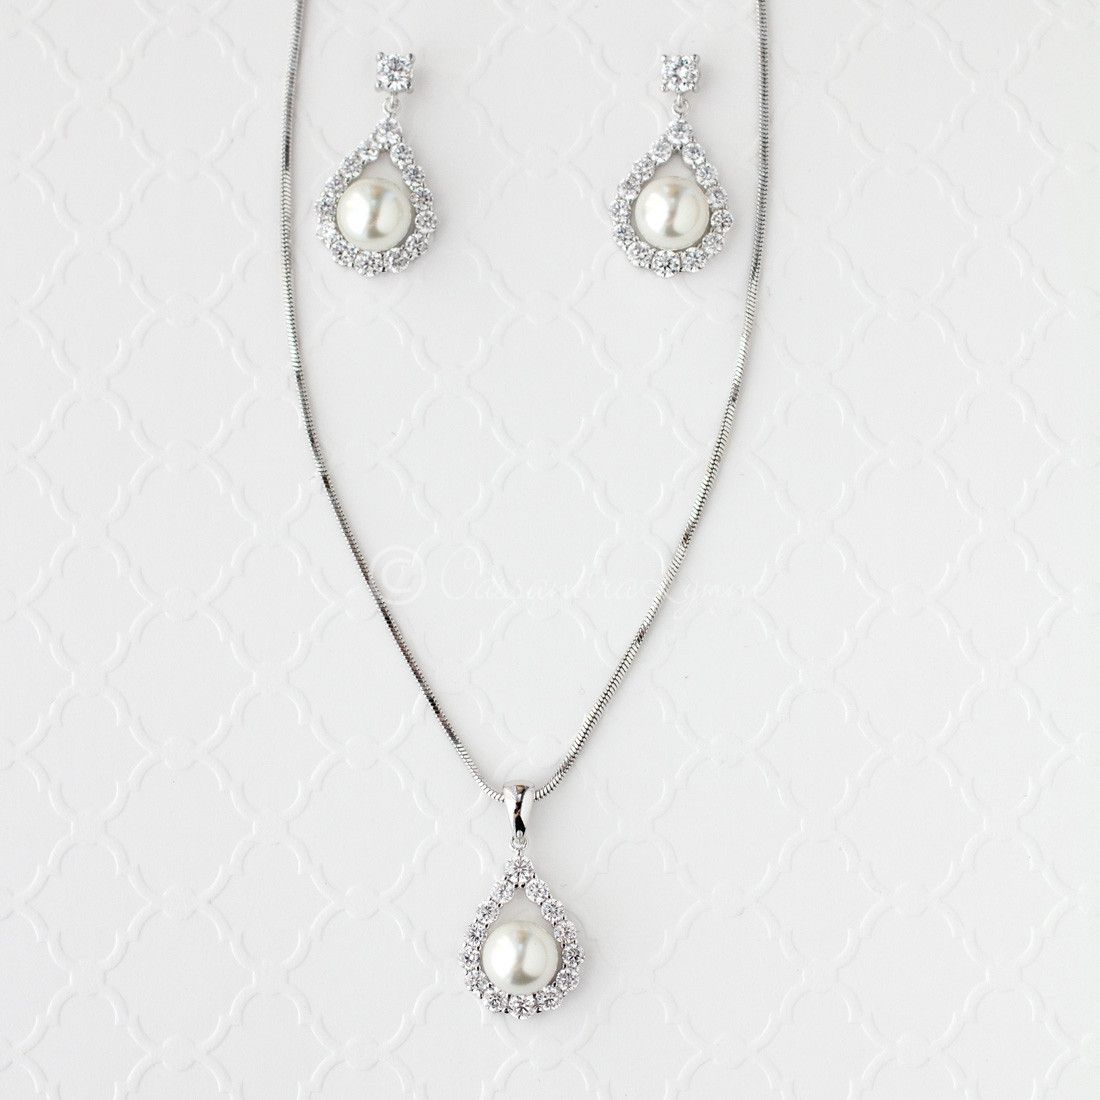 Wedding jewelry set of pearl drops necklace wedding jewelry sets